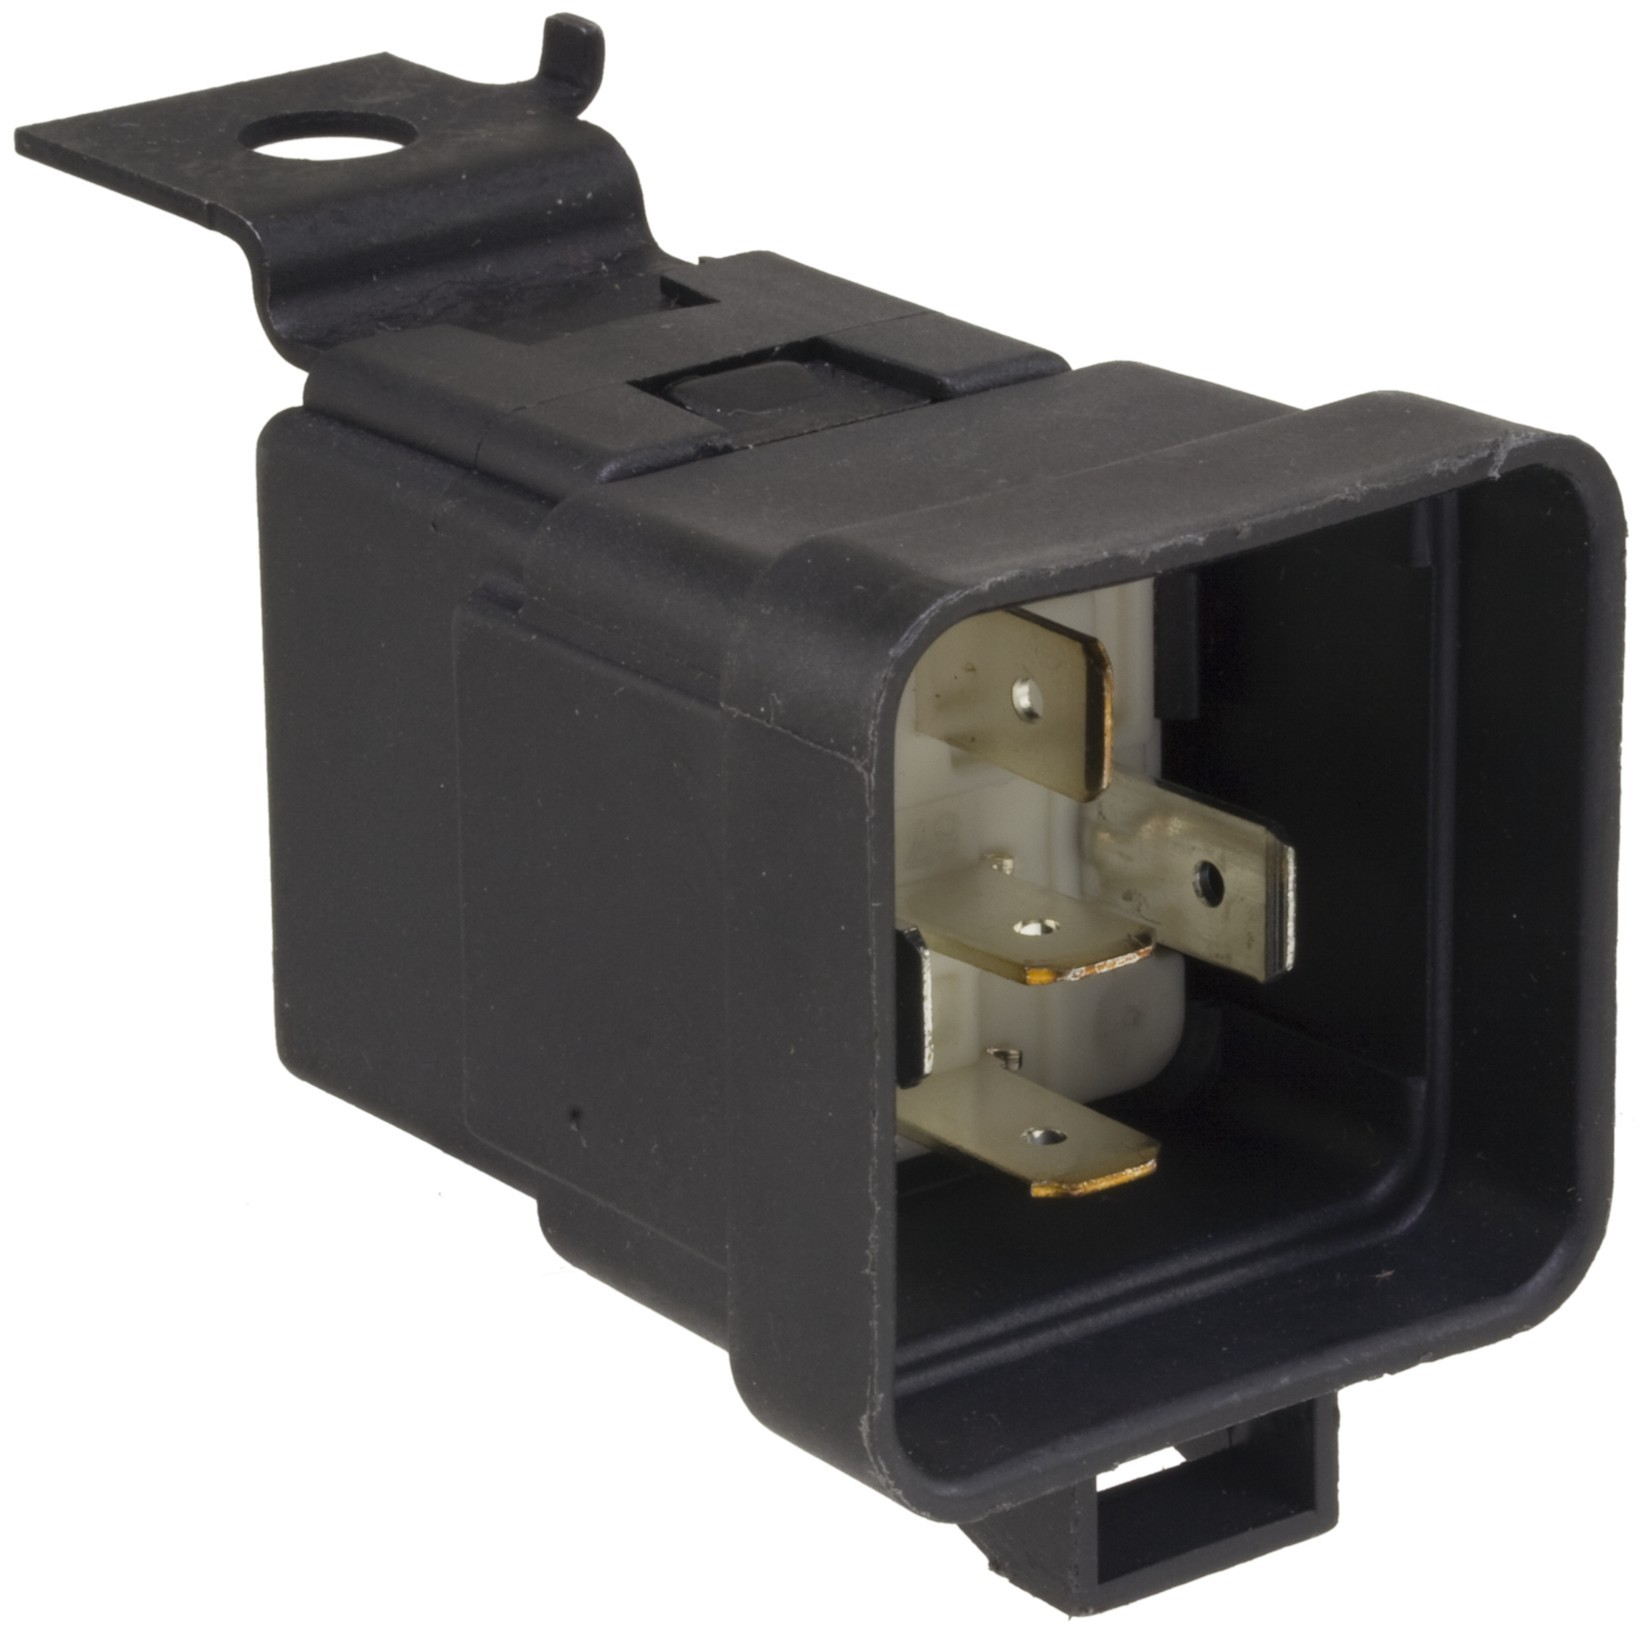 AIRTEX ENG. MGMT. SYSTEMS - ABS Pump and Motor Relay - AEM 1R1834